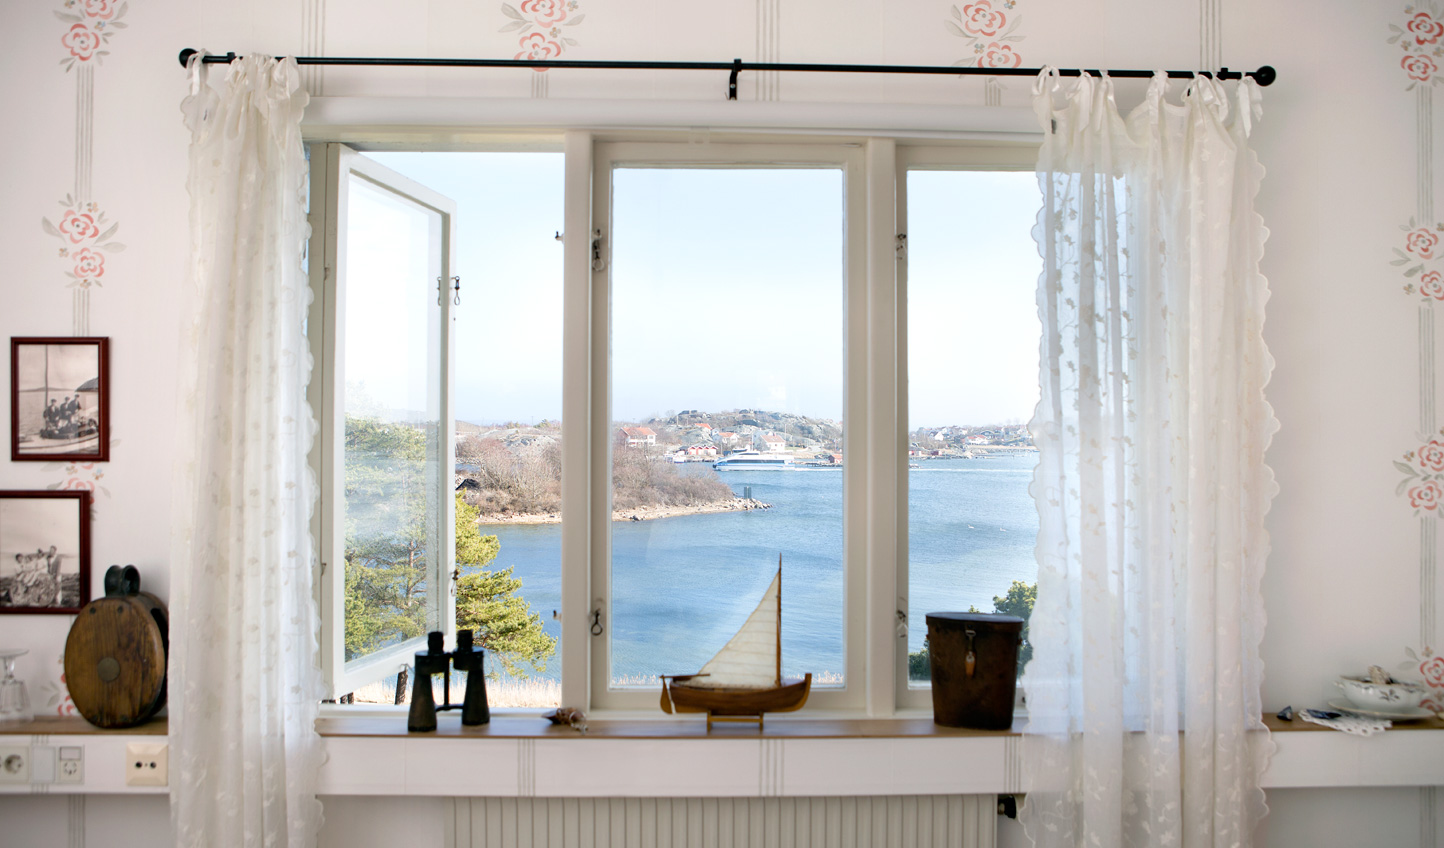 Lovely views from your room